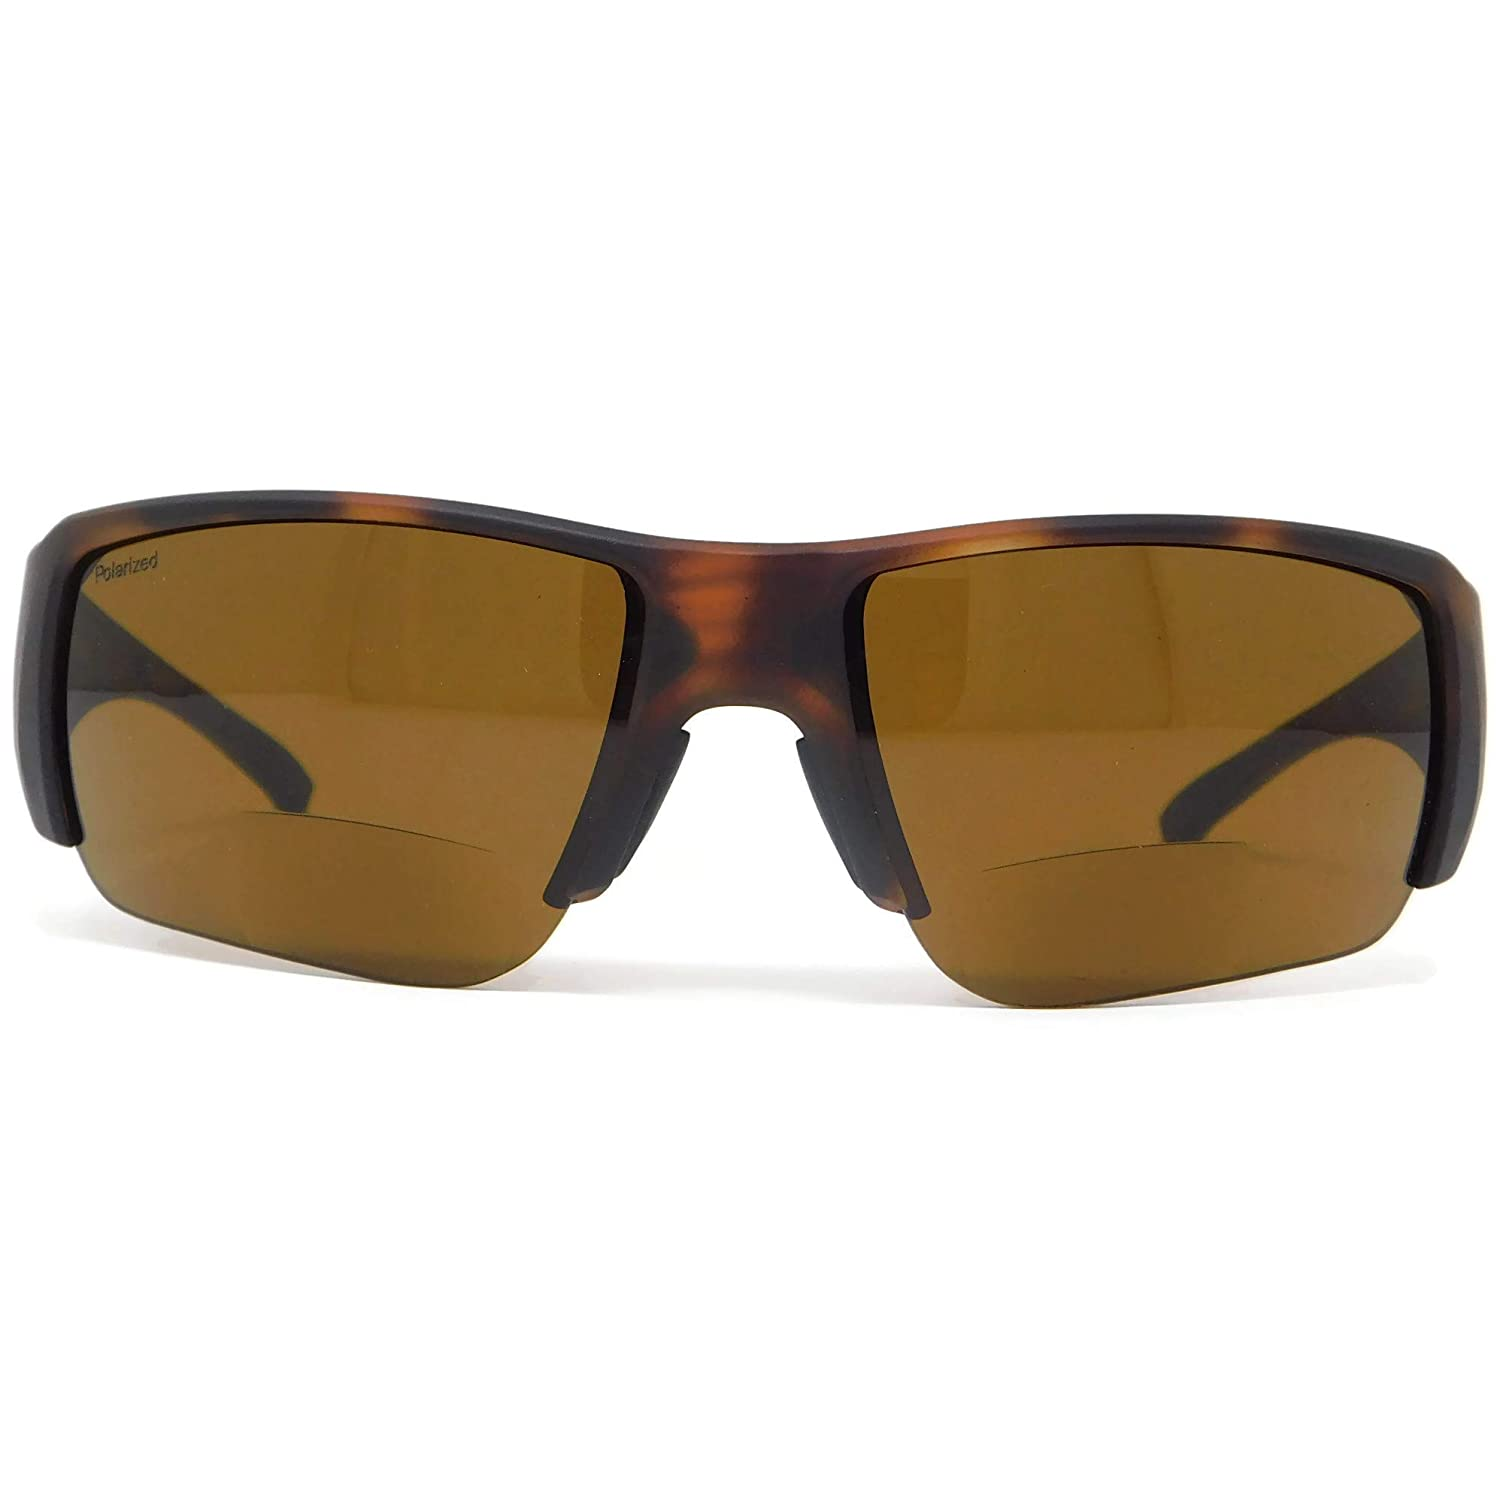 2.5 Bifocal Sunglasses Matte Havana Polarized Brown Smith Captains Choice